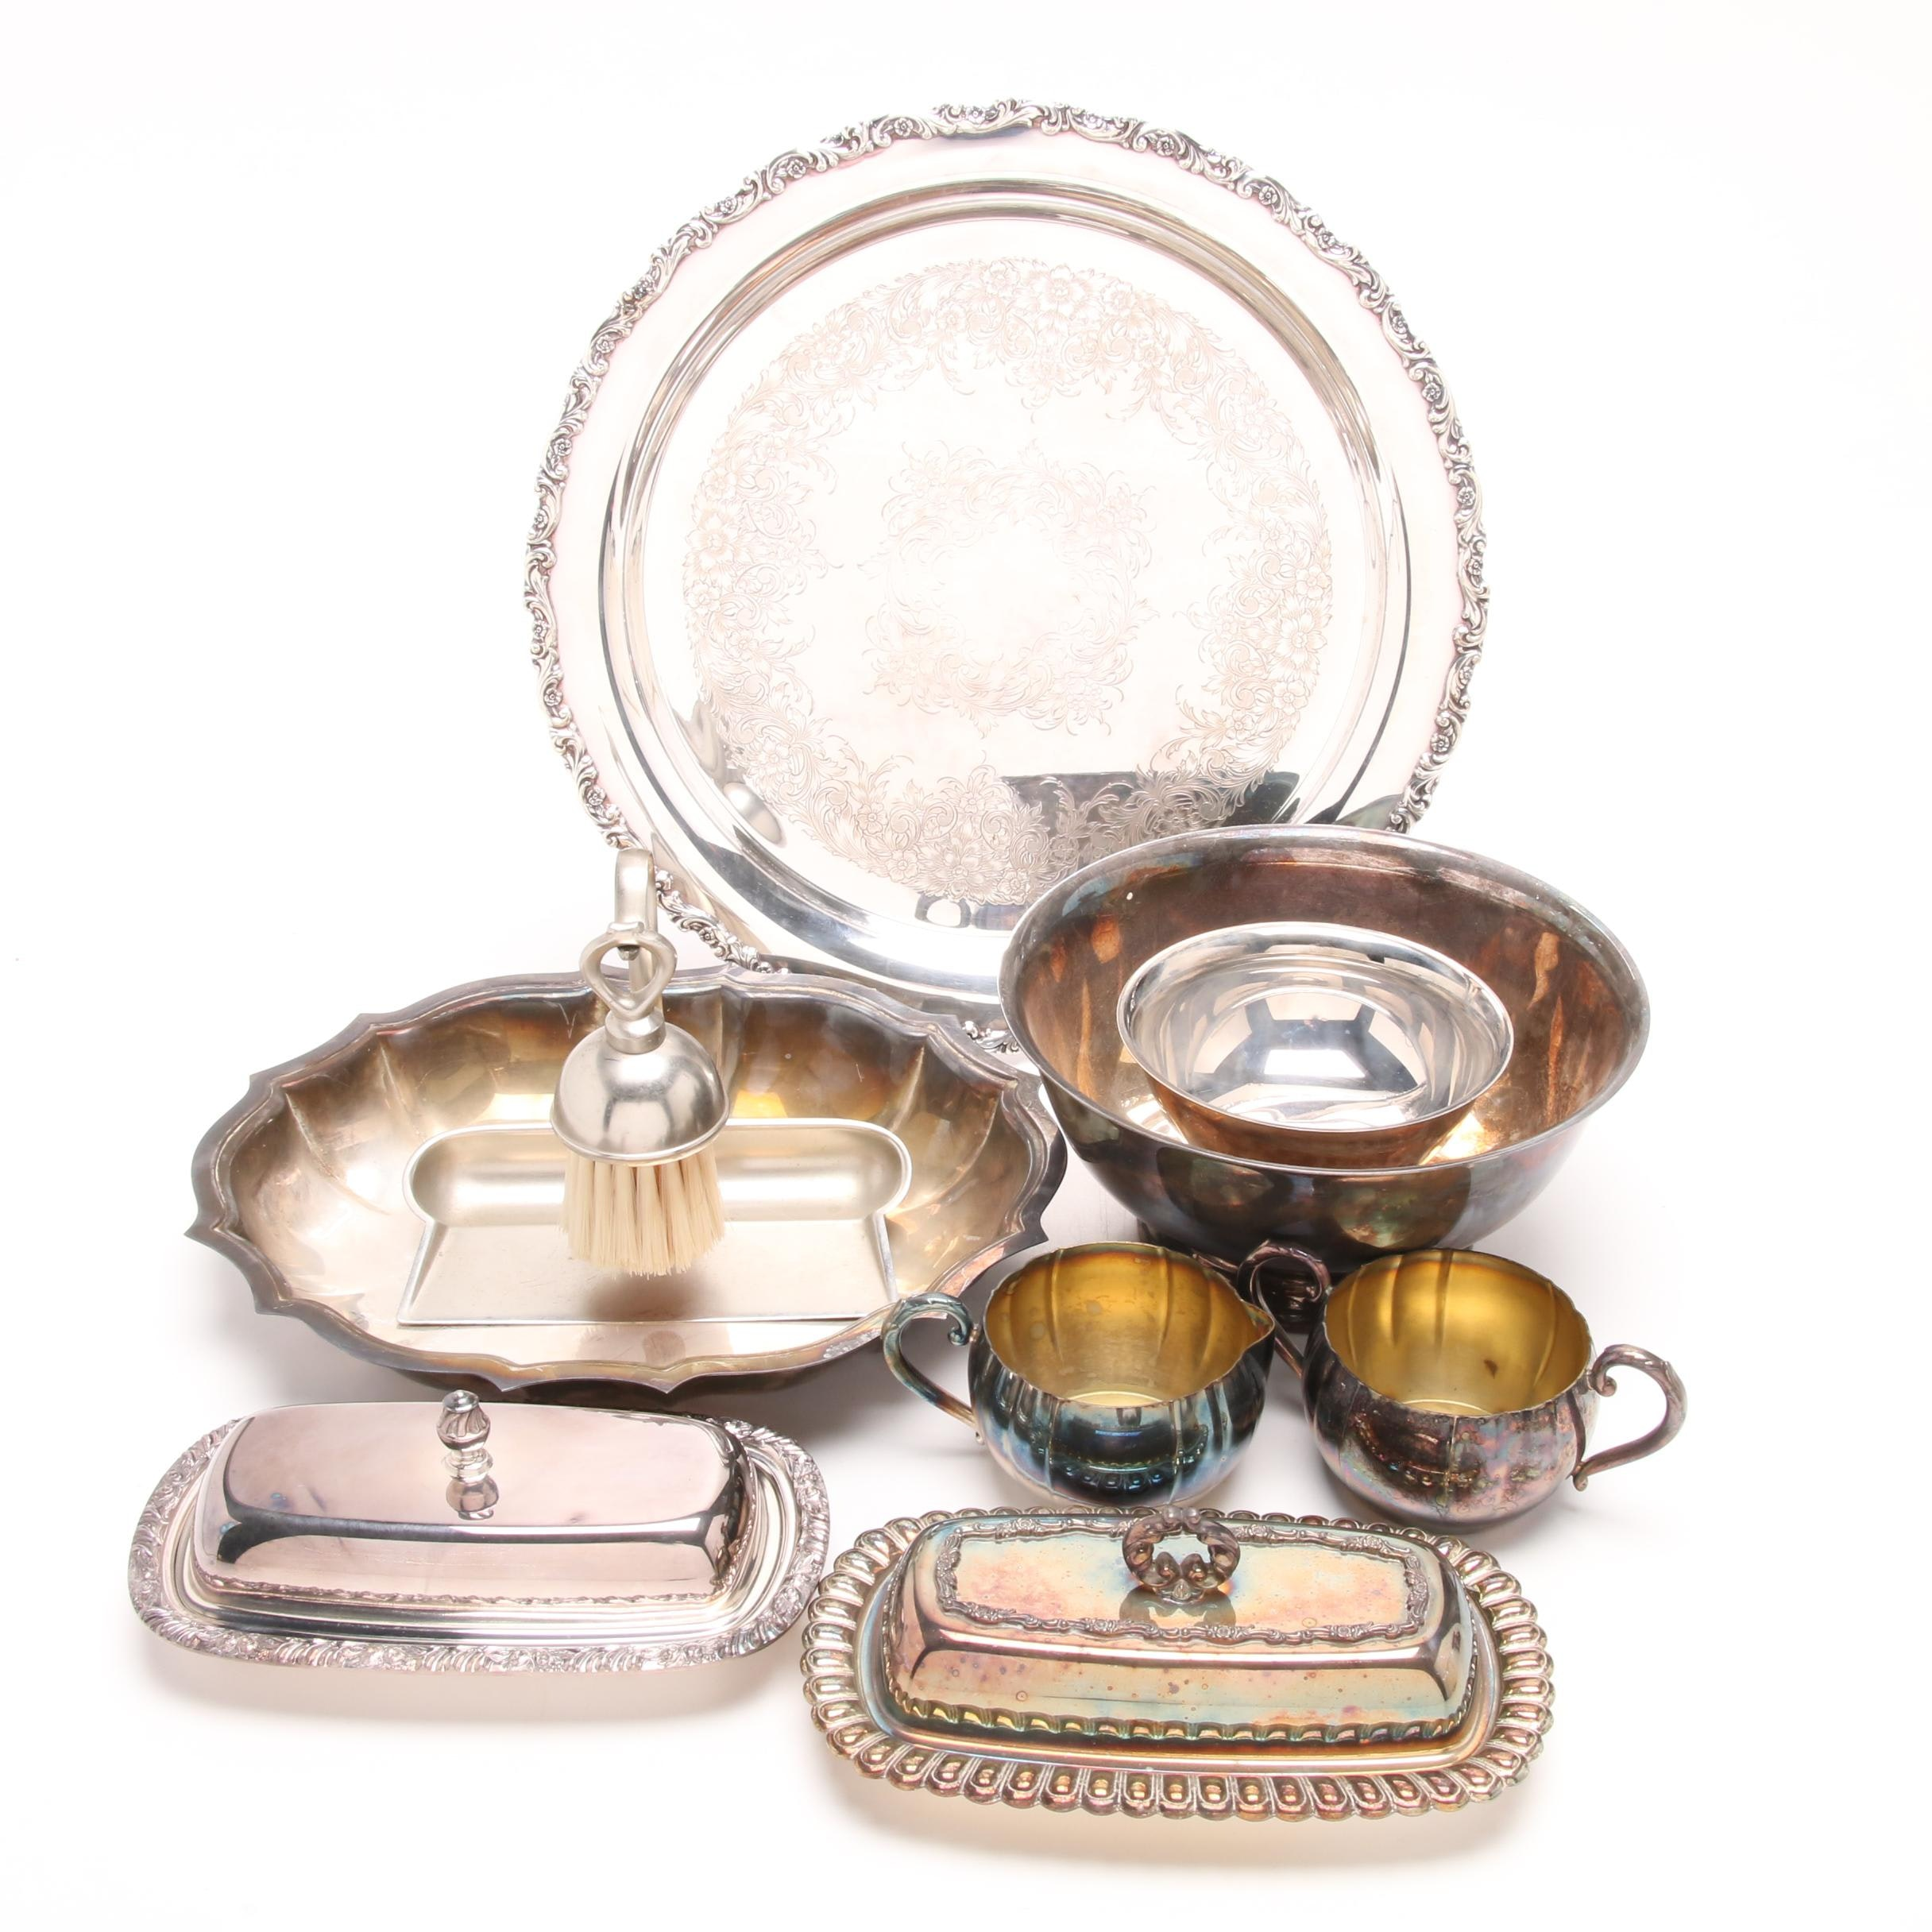 Silver Plate Serveware Featuring International Silver and Herald